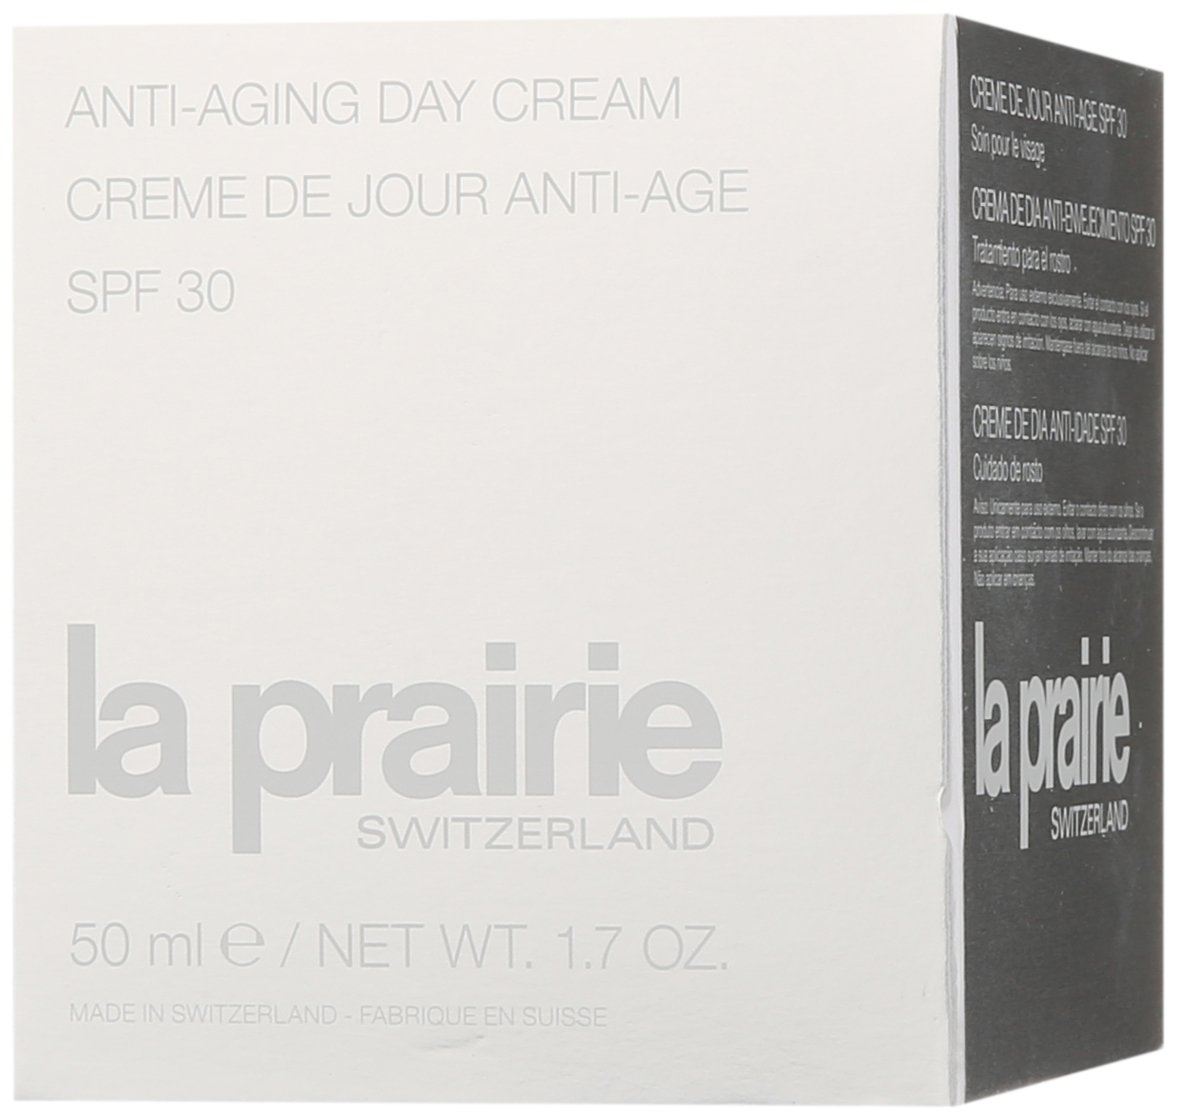 La Prairie Anti Aging Day Cream SPF 30 for Unisex, 1.7 Ounce